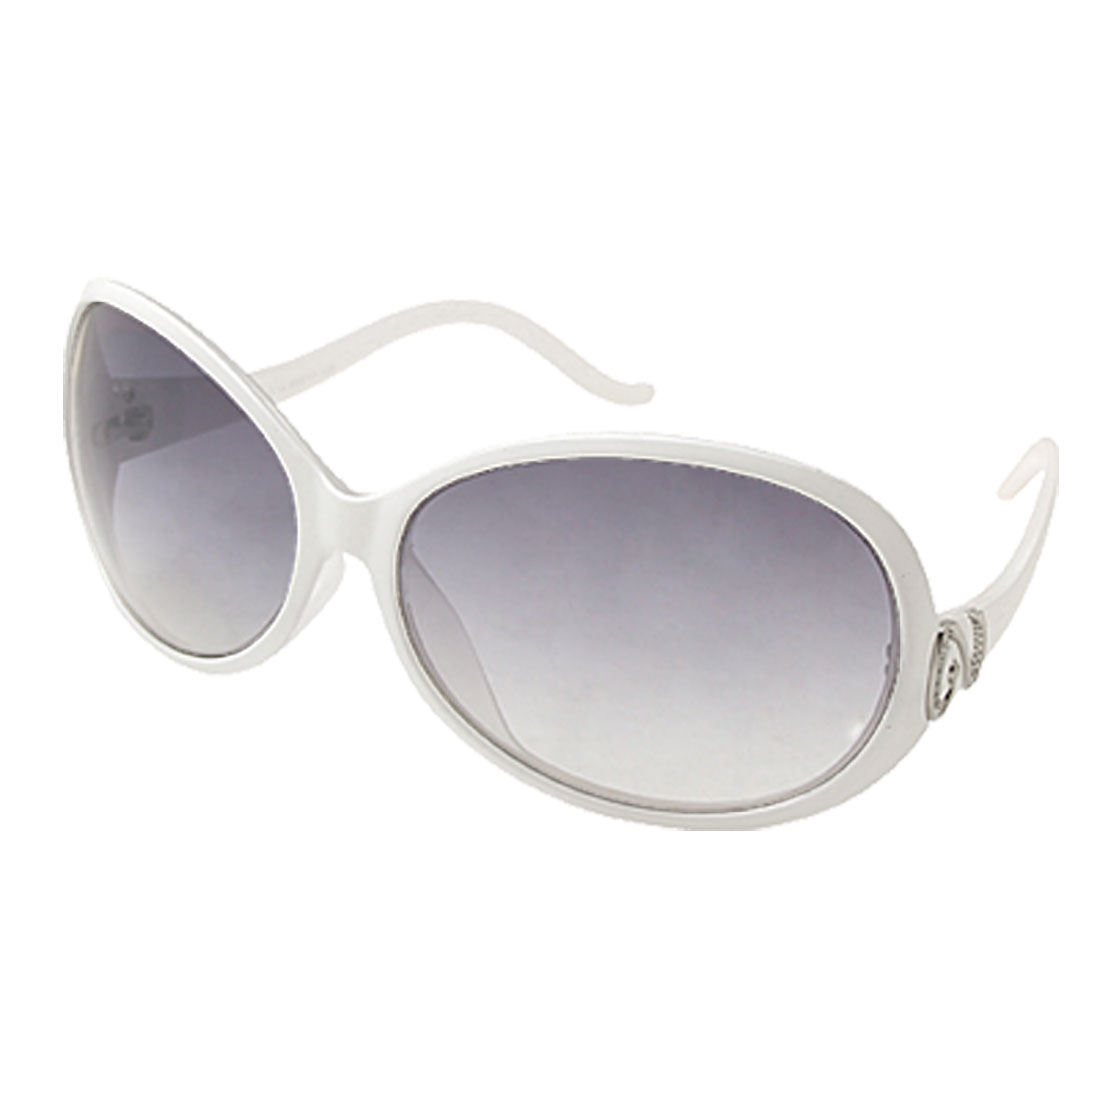 Fashion Plastic Sunglasses with White Frame for Ladies